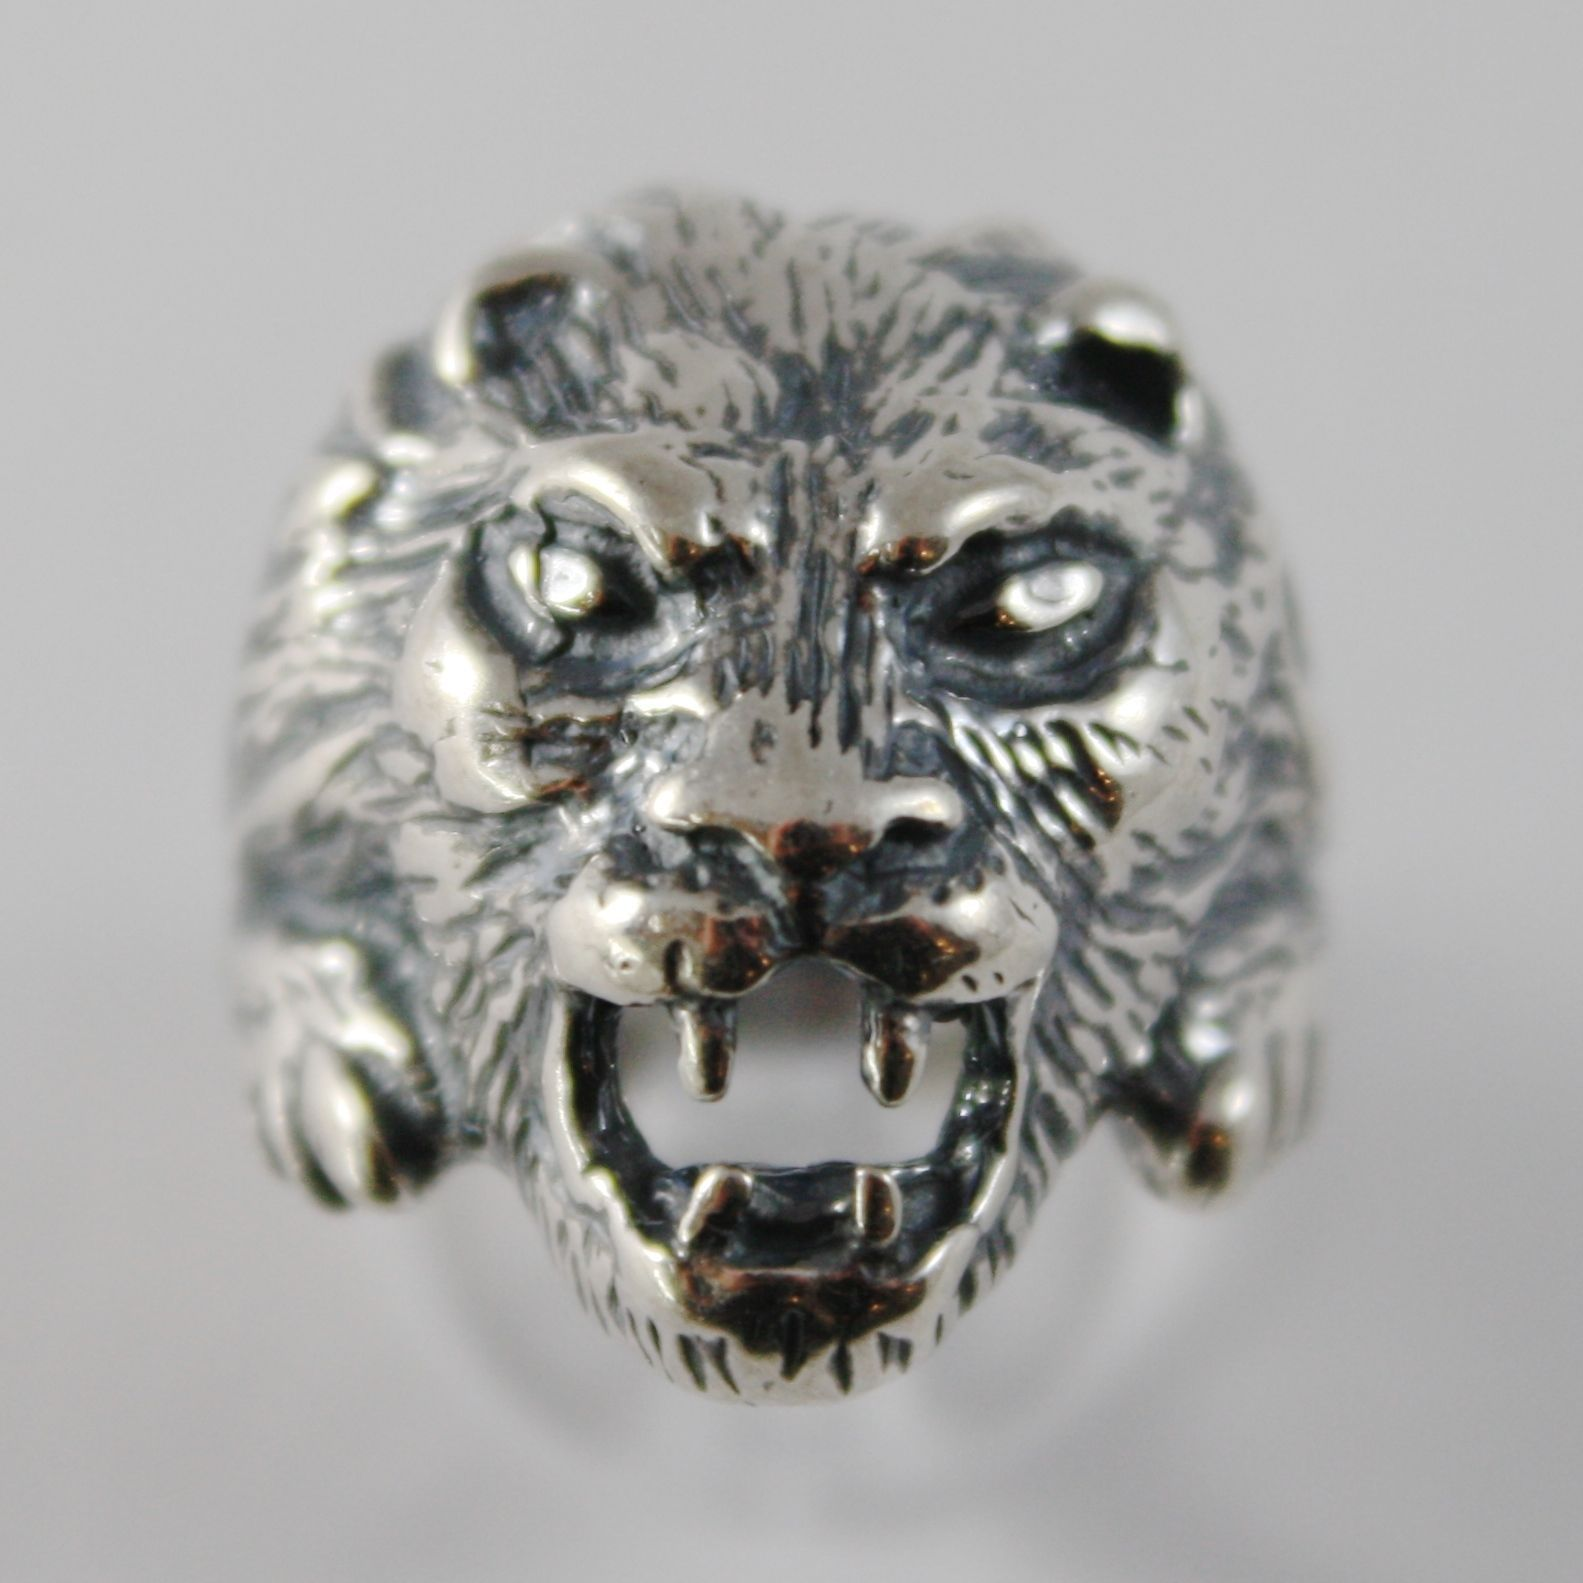 SOLID 925 BURNISHED SILVER BAND RING LION HEAD FINELY WORKED, MADE IN ITALY